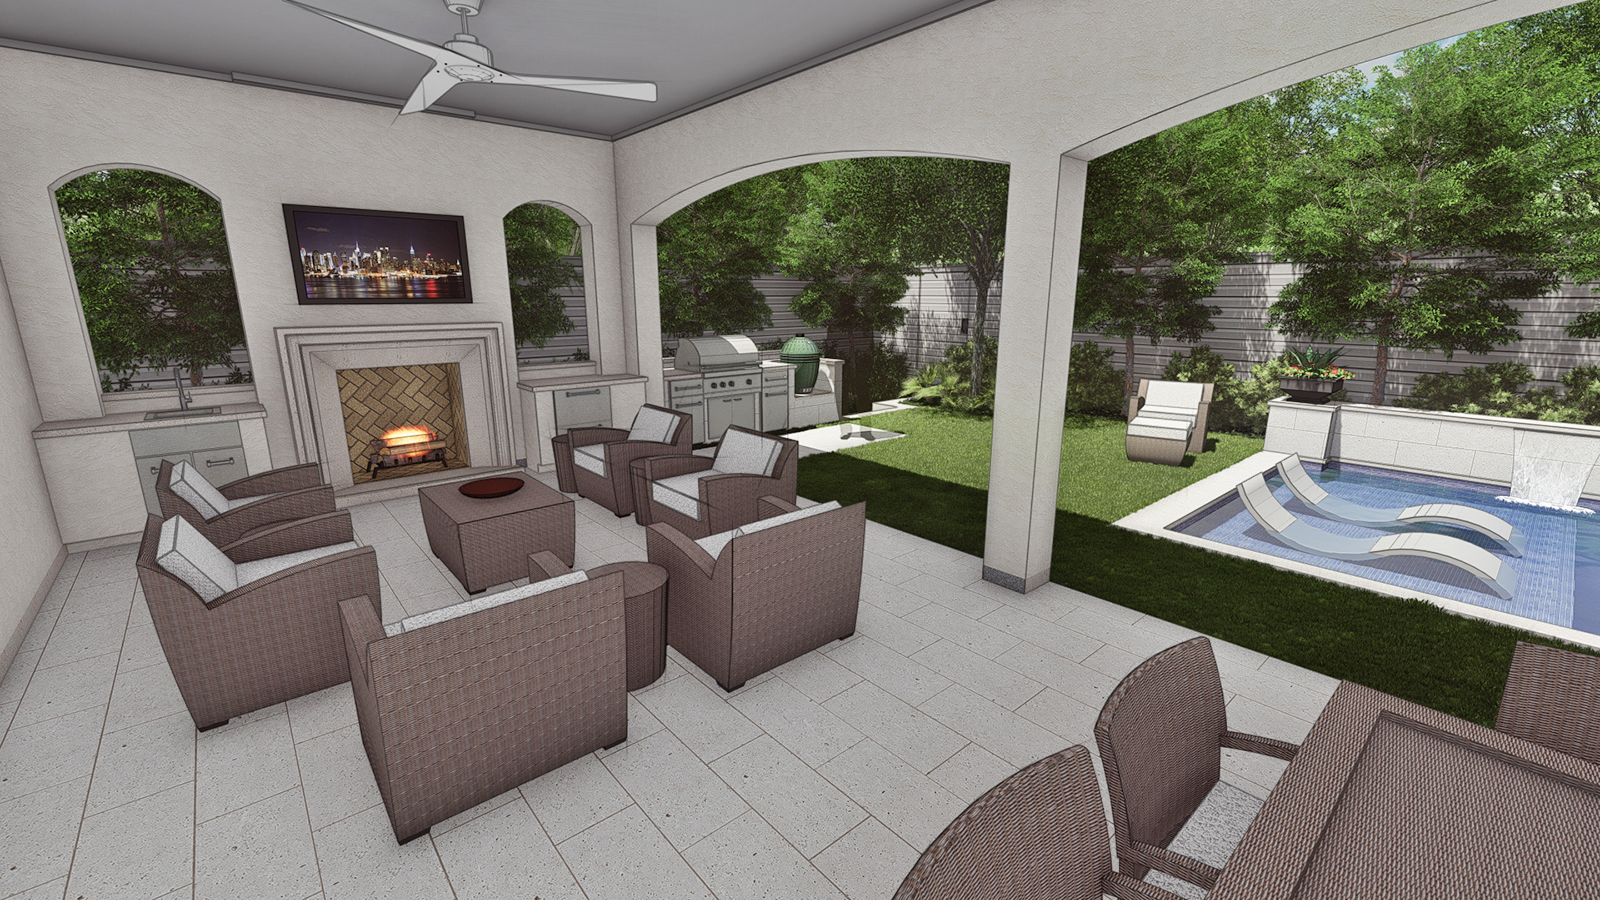 VIEW OF COVERED PORCH, FIREPLACE & GRILL AREA